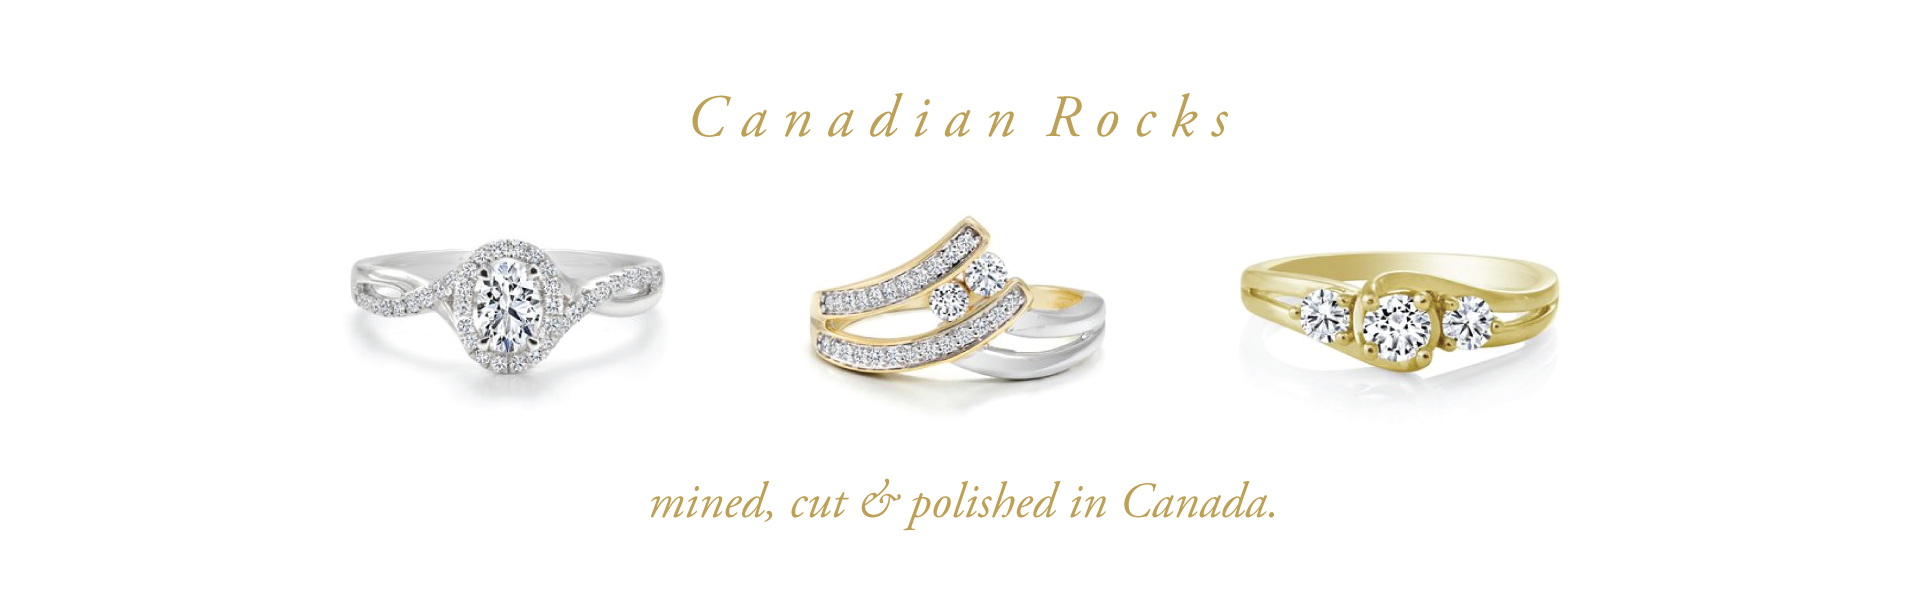 Herbin Jewellers Canadian Rocks